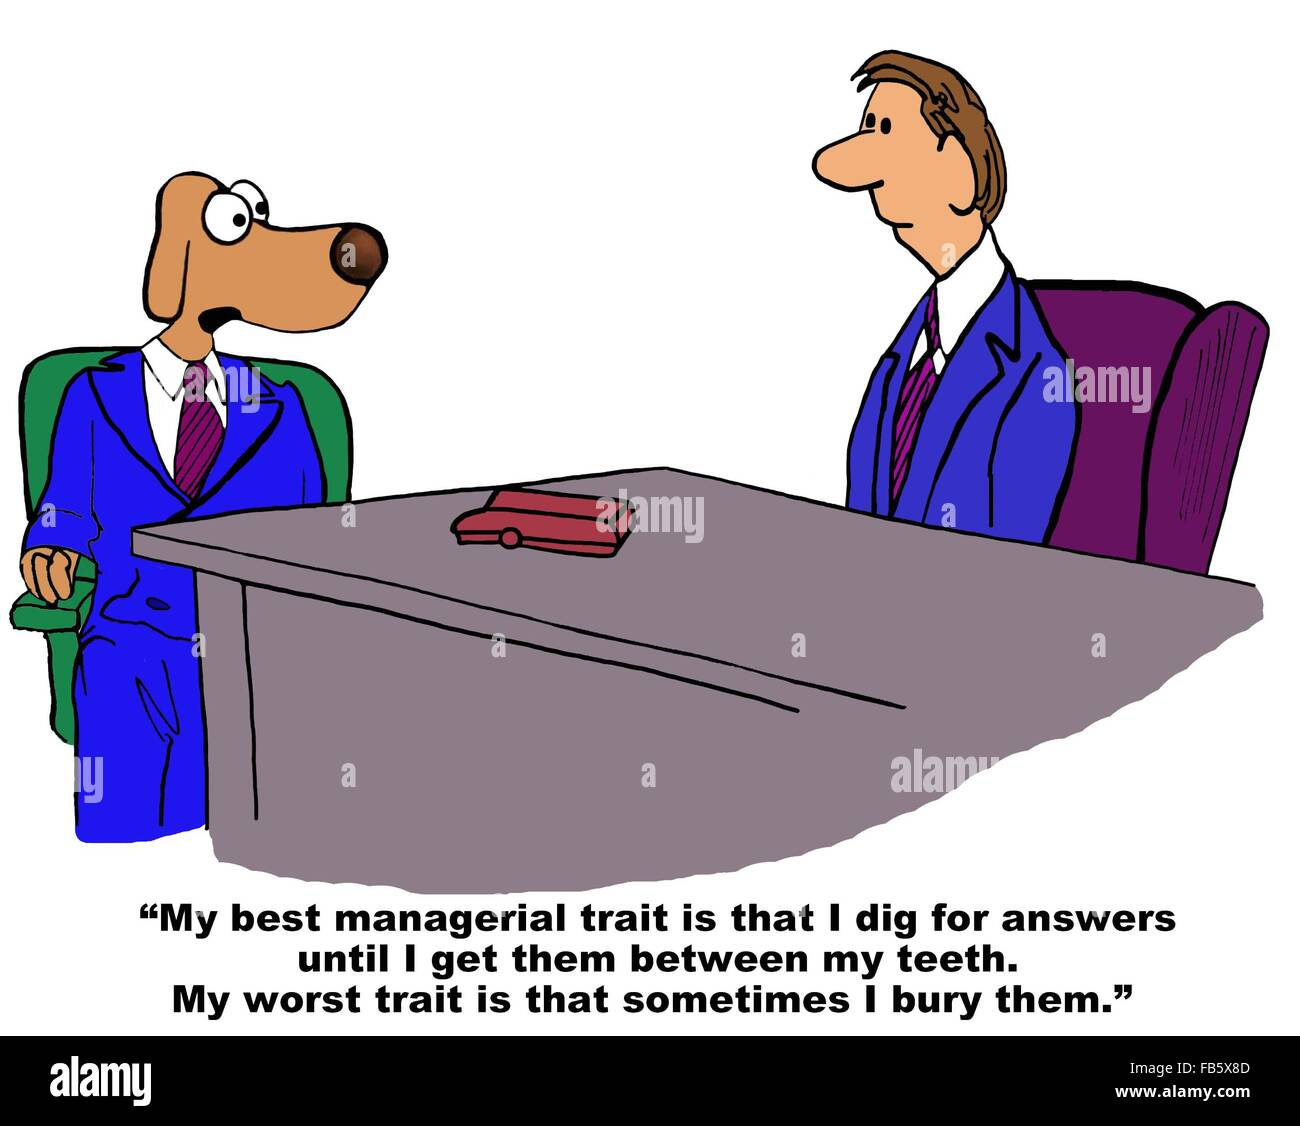 Job Search Cartoons High Resolution Stock Photography And Images Alamy